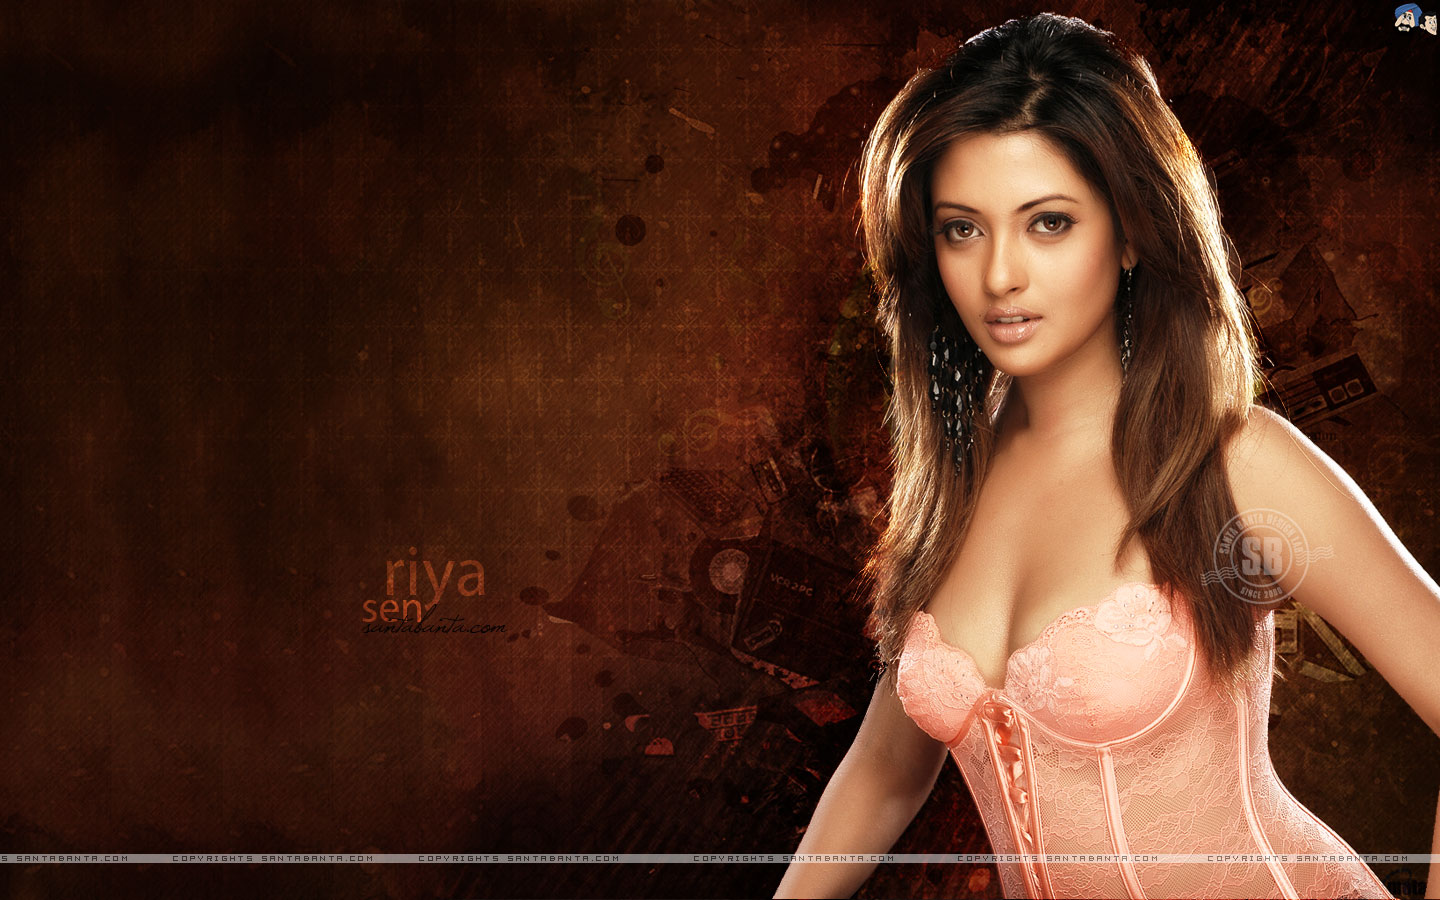 Real Agressive Online News Paper 10 Latest Riya Sen Hot Hd Wallpapers Complete Biography